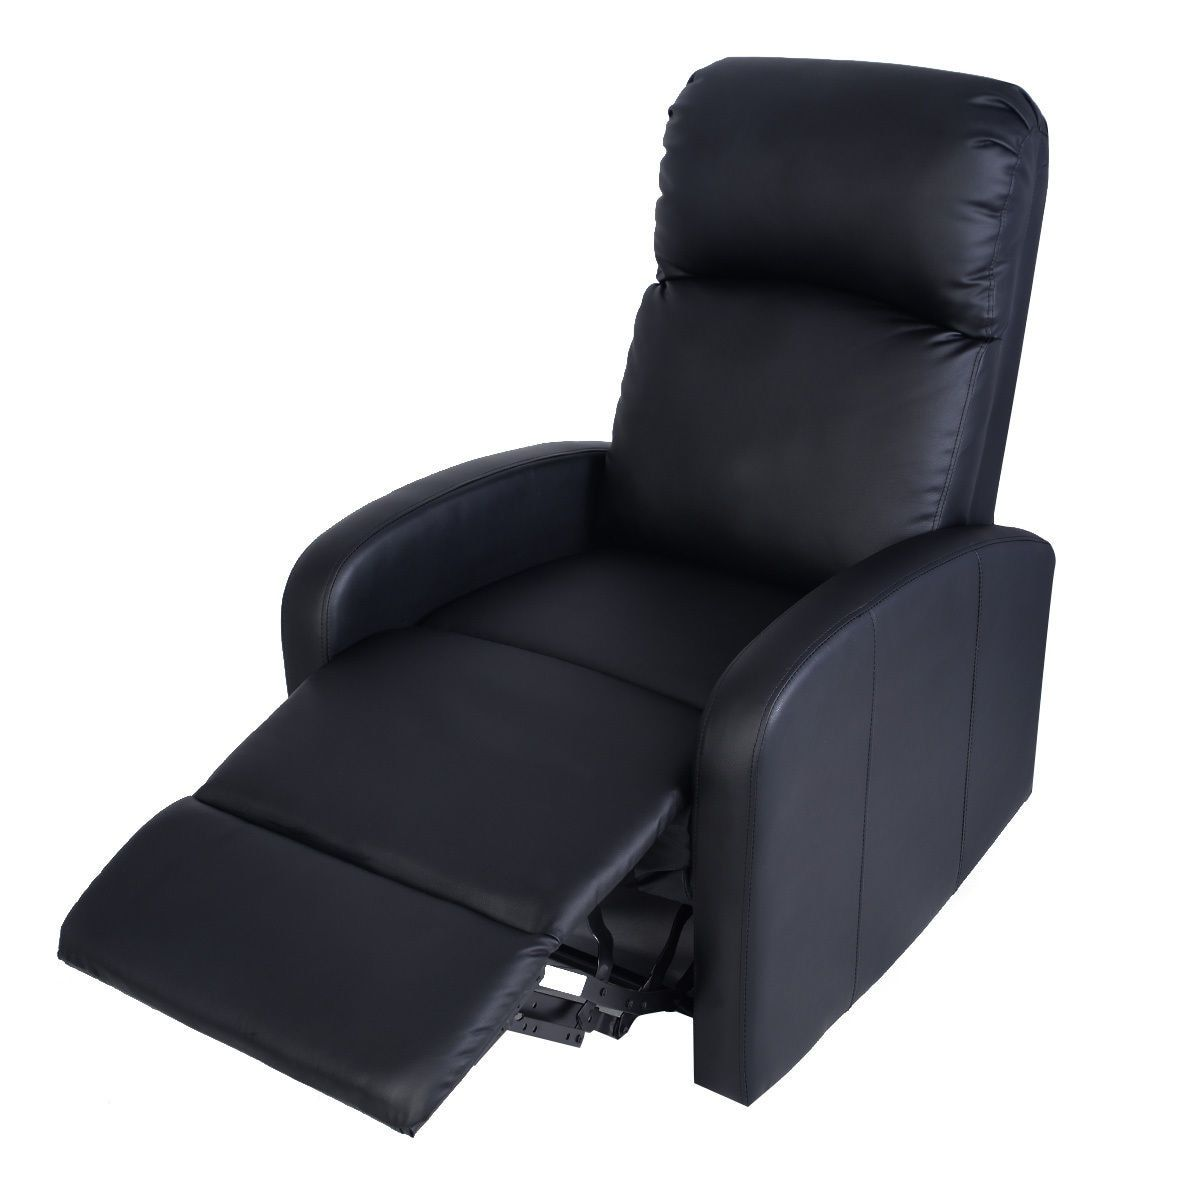 Giantex Manual Recliner Sofa Chair Black Home Living Room ...